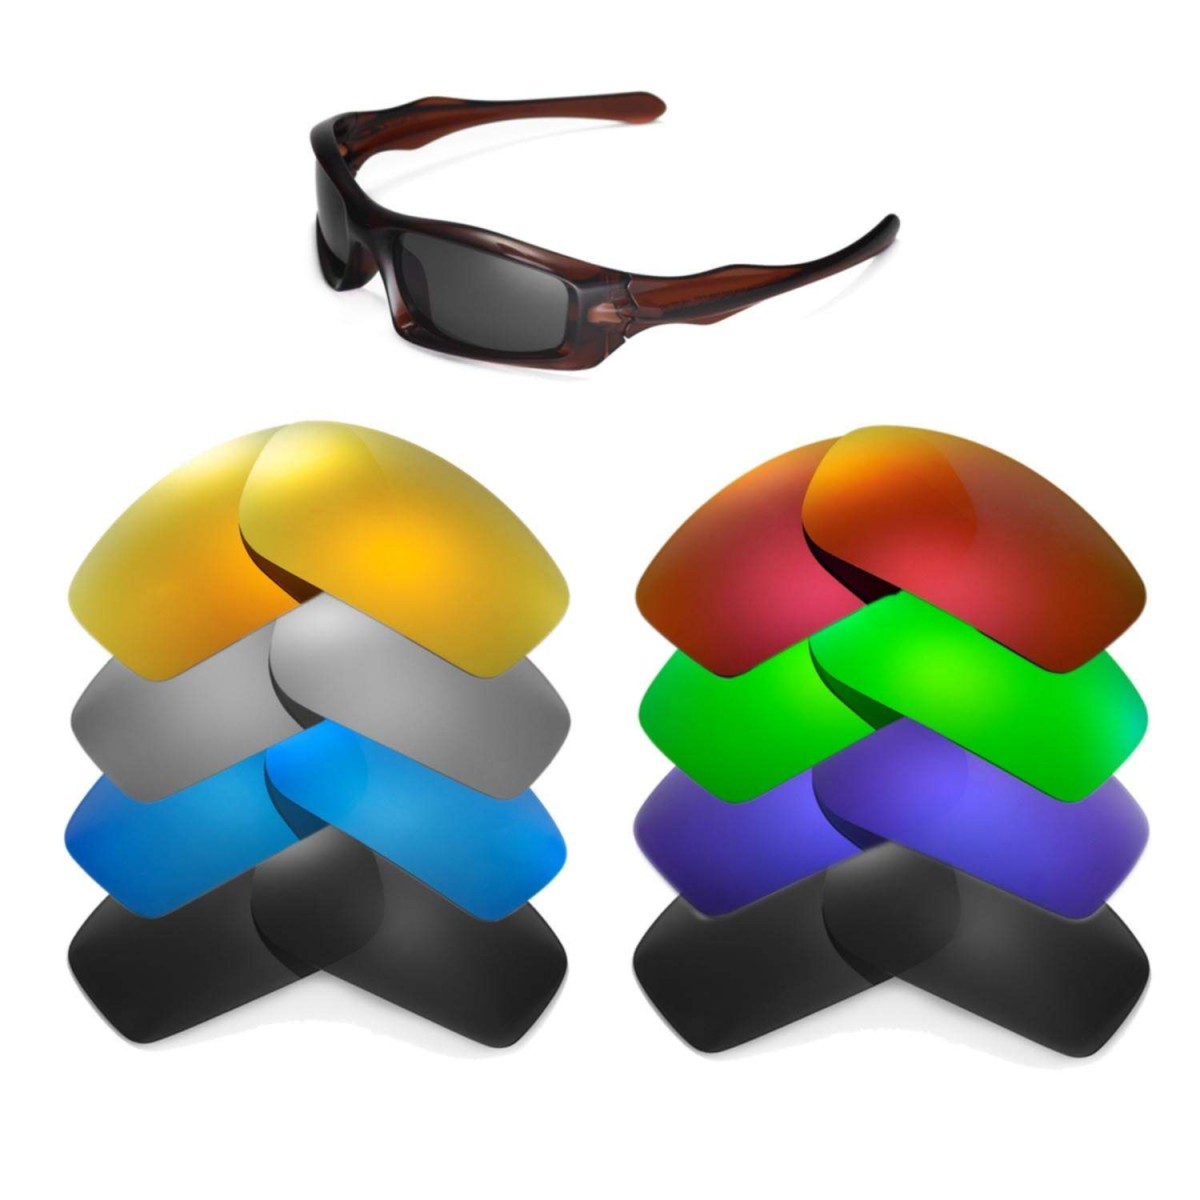 c0b6d07ba0 Cofery Lenses Store Cofery Replacement Lenses for Oakley Monster Pup  Sunglasses